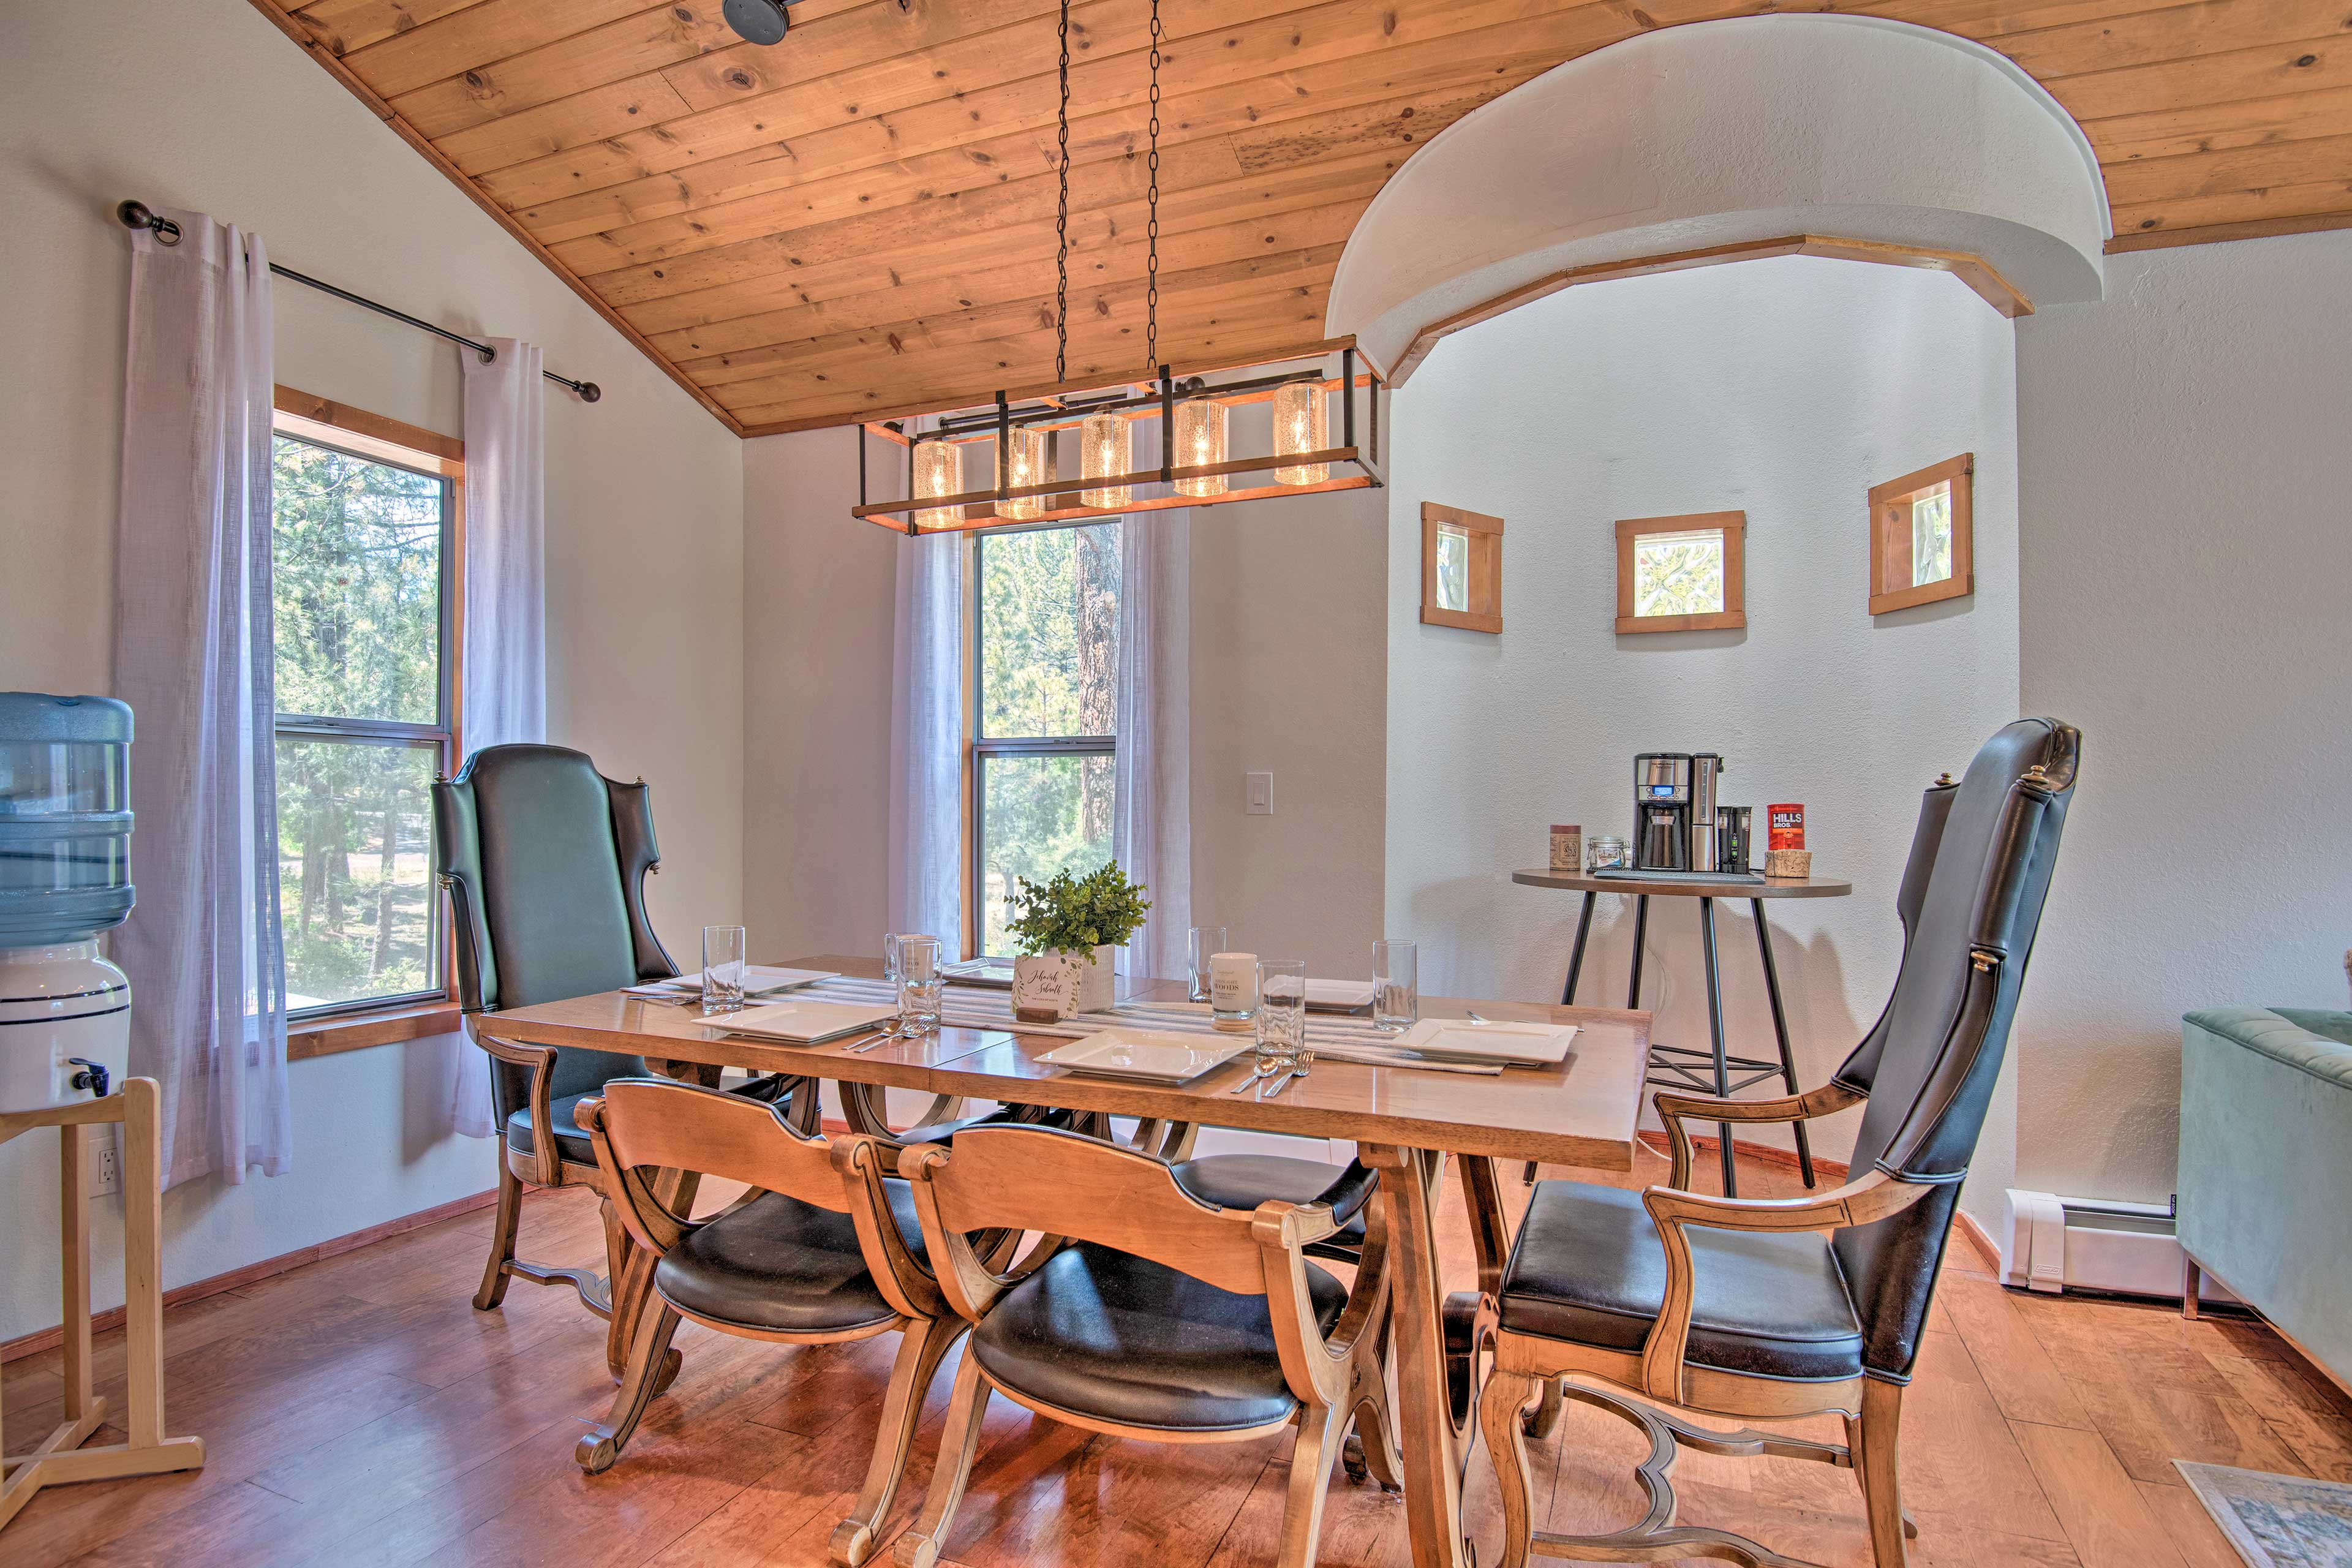 Family & friends can gather for a meal at the formal dining table.